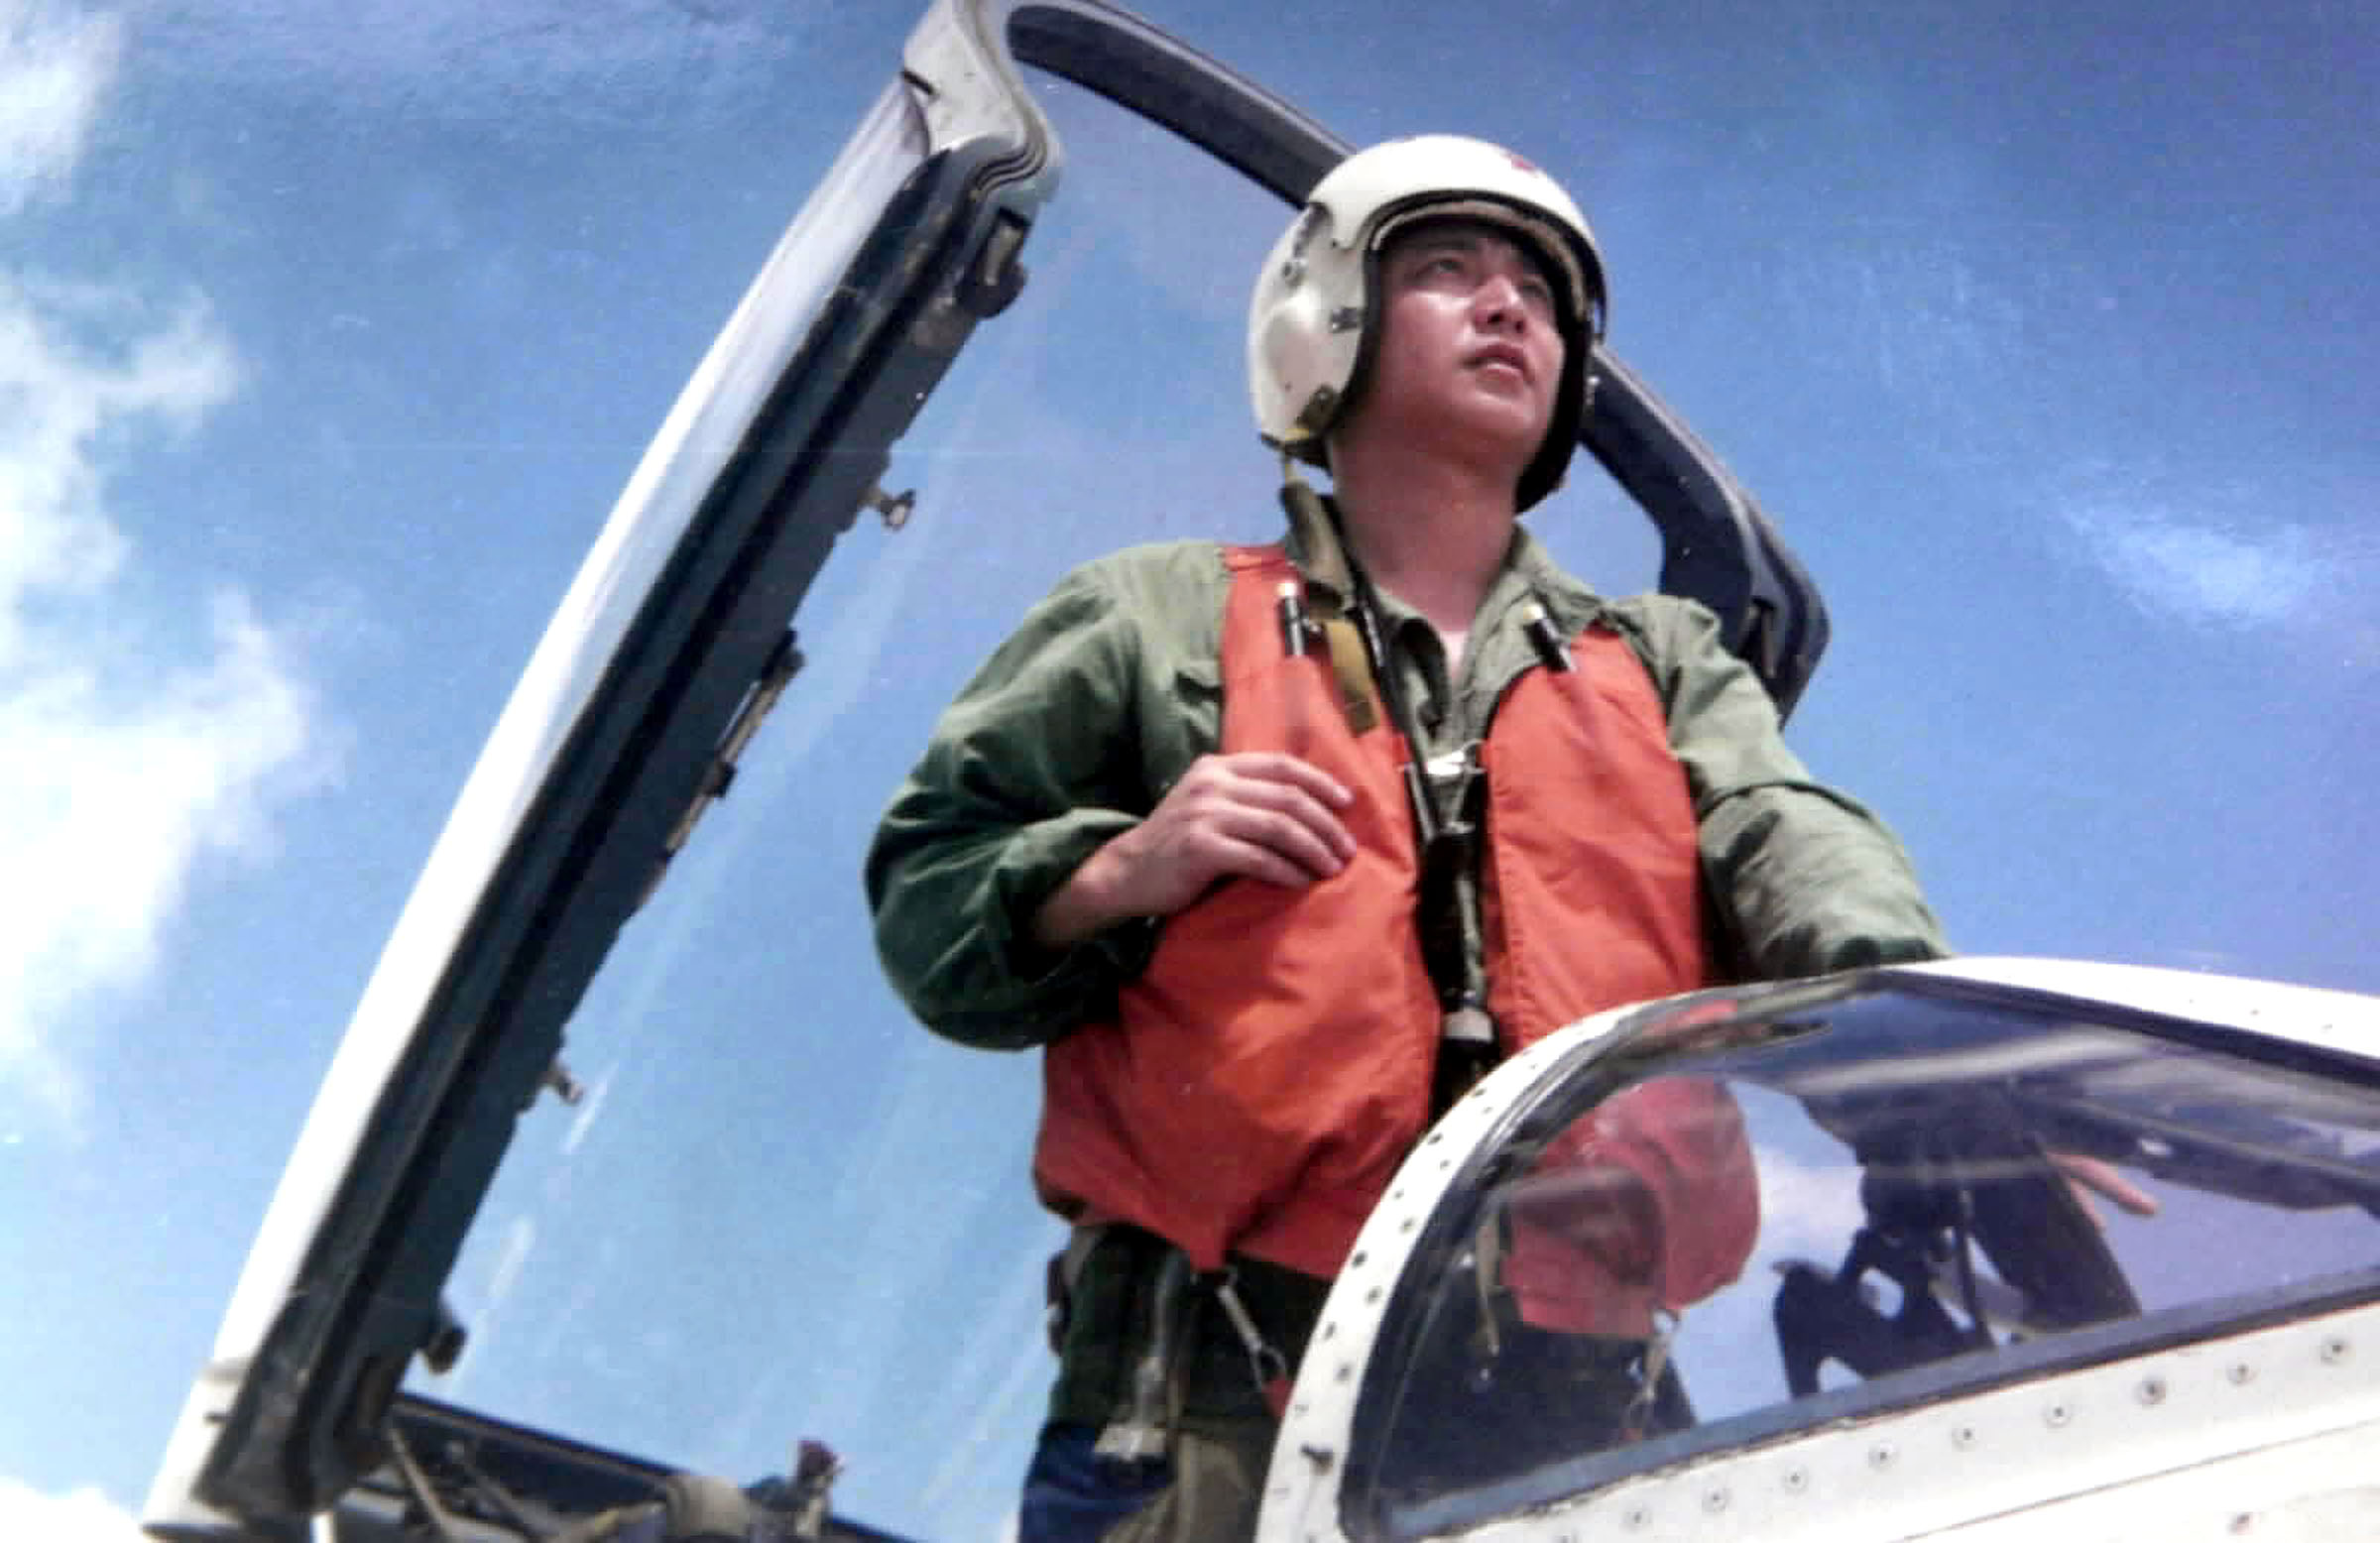 387645 01: Undated File Photo: Chinese Pilot Wang Wei Stands In The Cockpit Of A Jet. After A Collision With A U.S. Navy Surveillance Plane April 1, 2001 Chinese Officials Reported That Wang Parachuted Out Of His Fighter Jet Over The South China Sea And Is Presumed Dead, April 9.  (Photo By Getty Images)